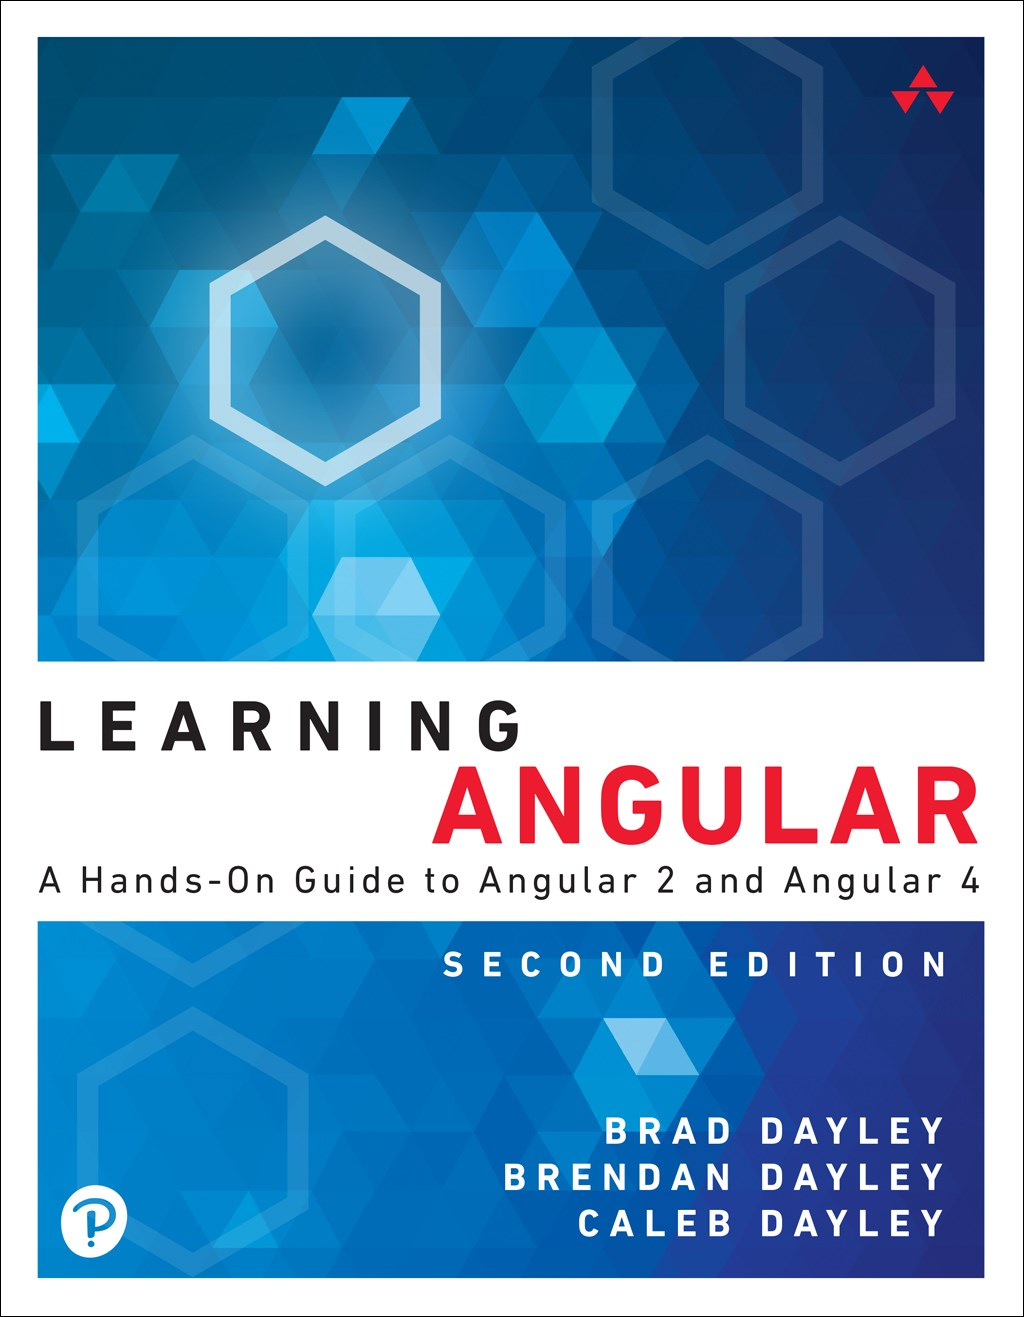 Learning Angular: A Hands-On Guide to Angular 2 and Angular 4, Web Edition, 2nd Edition